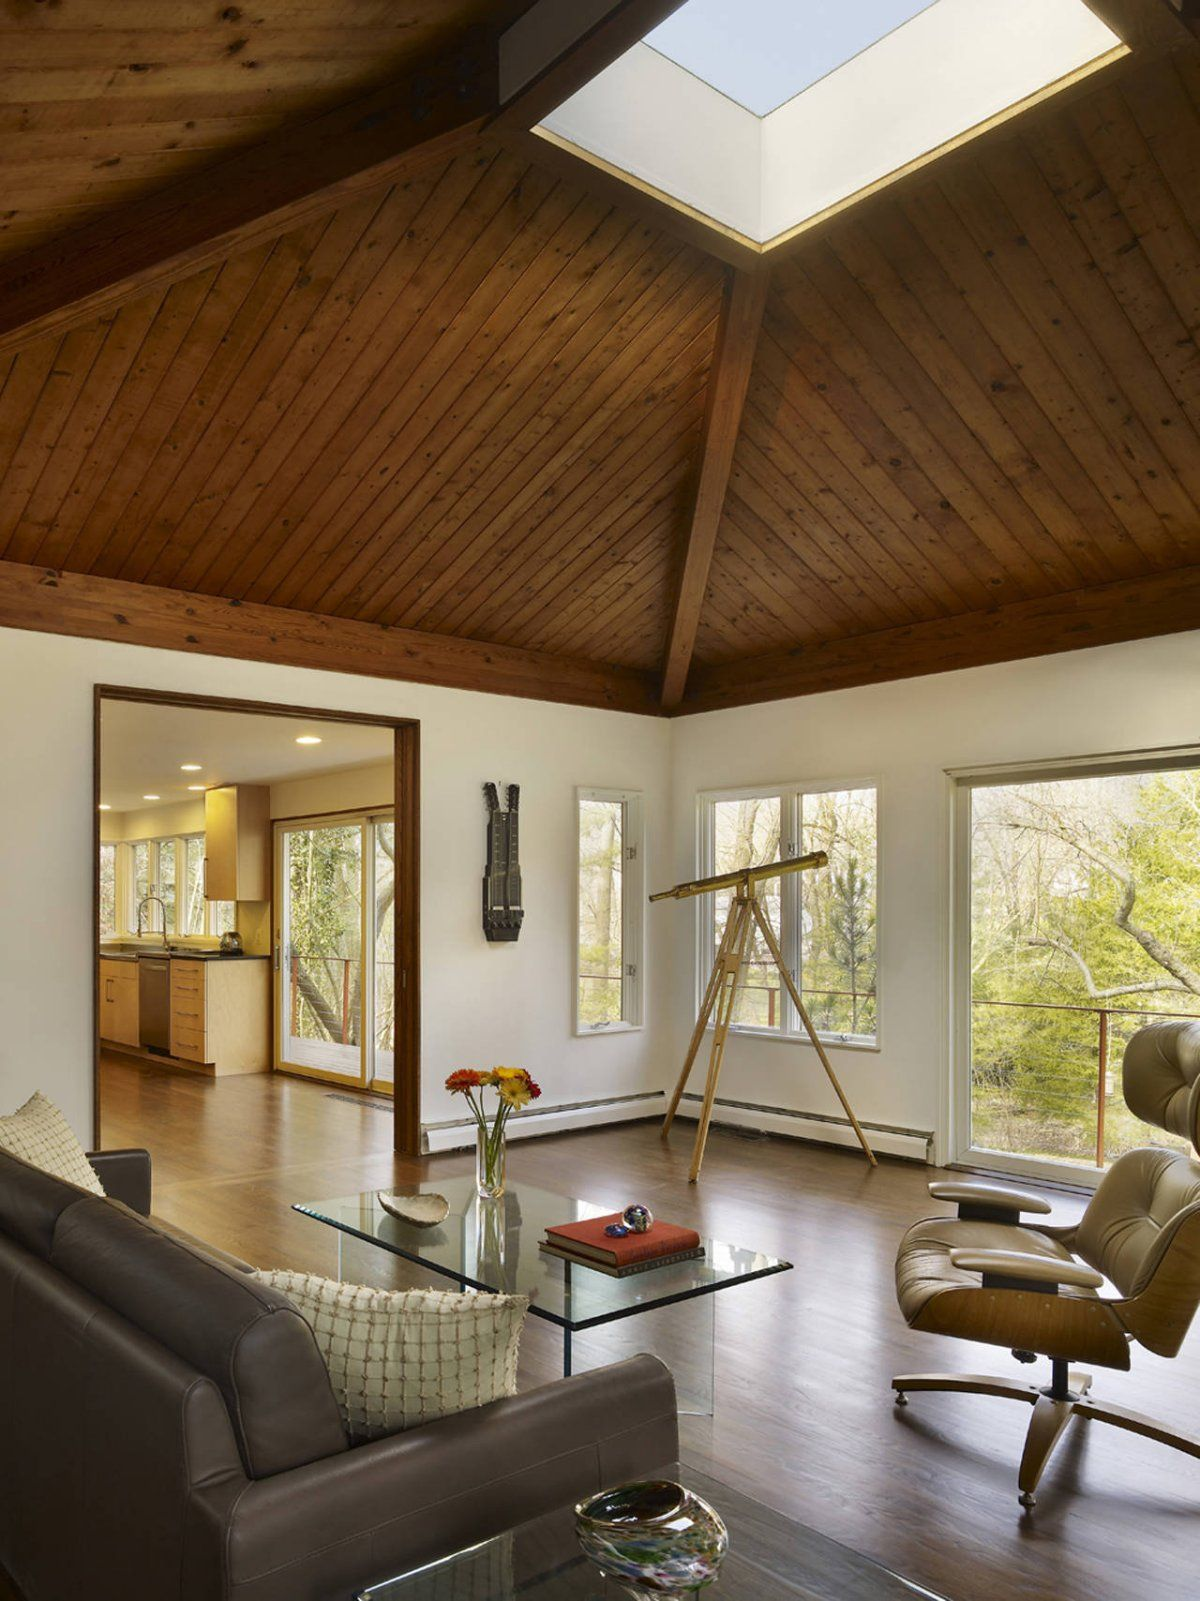 Living Space Design With Wooden Ceiling In Mid Century Modern - Mid century home design